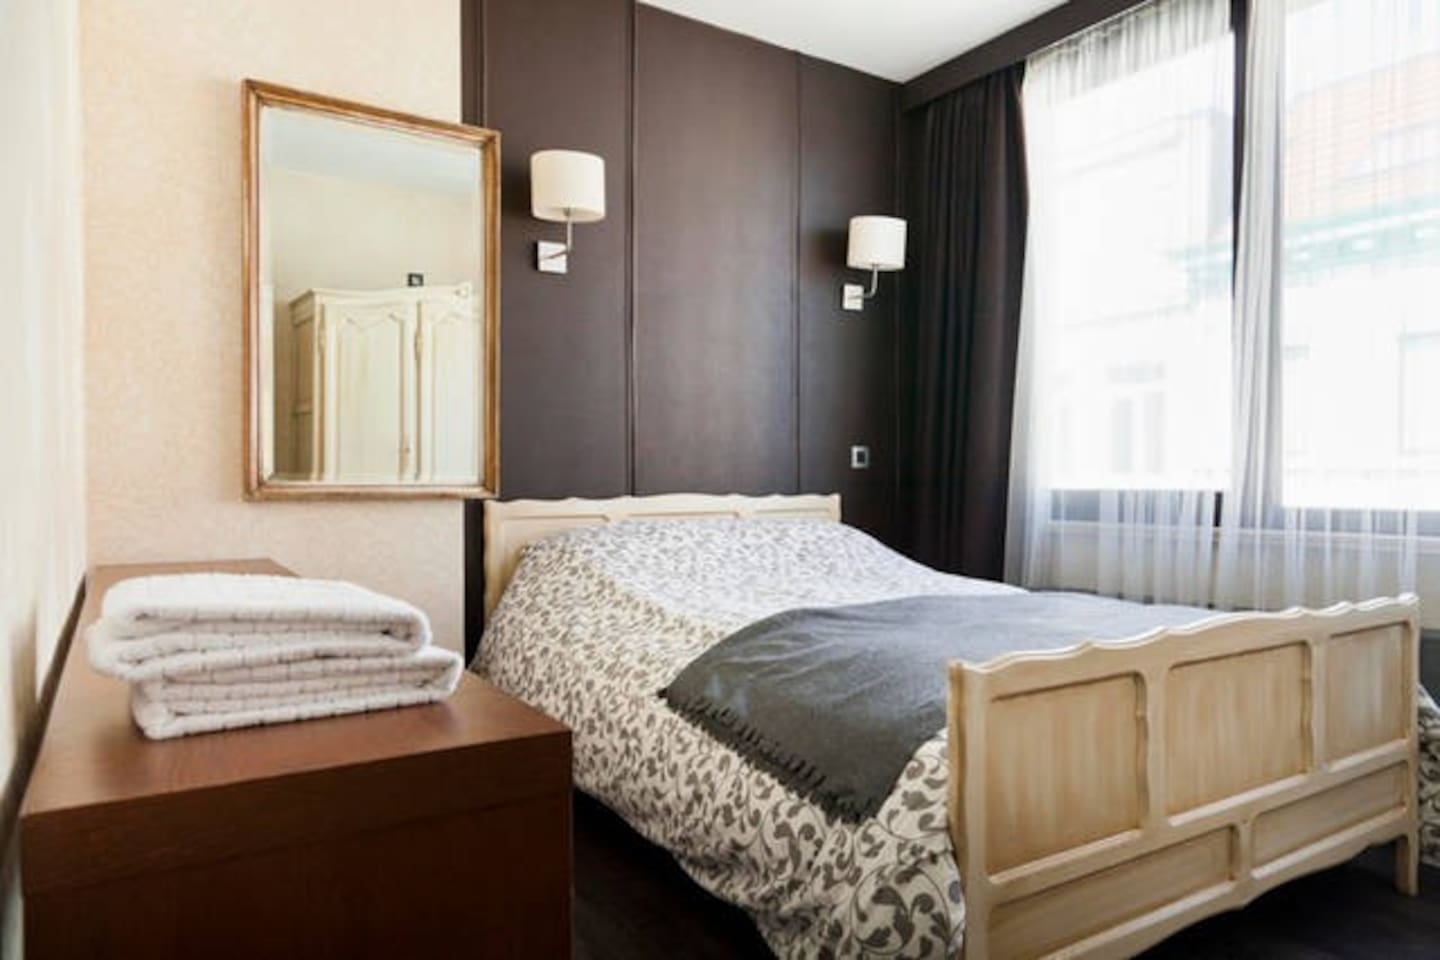 Double room ~ wifi ~ Shared bathroom walk-in shower with single room